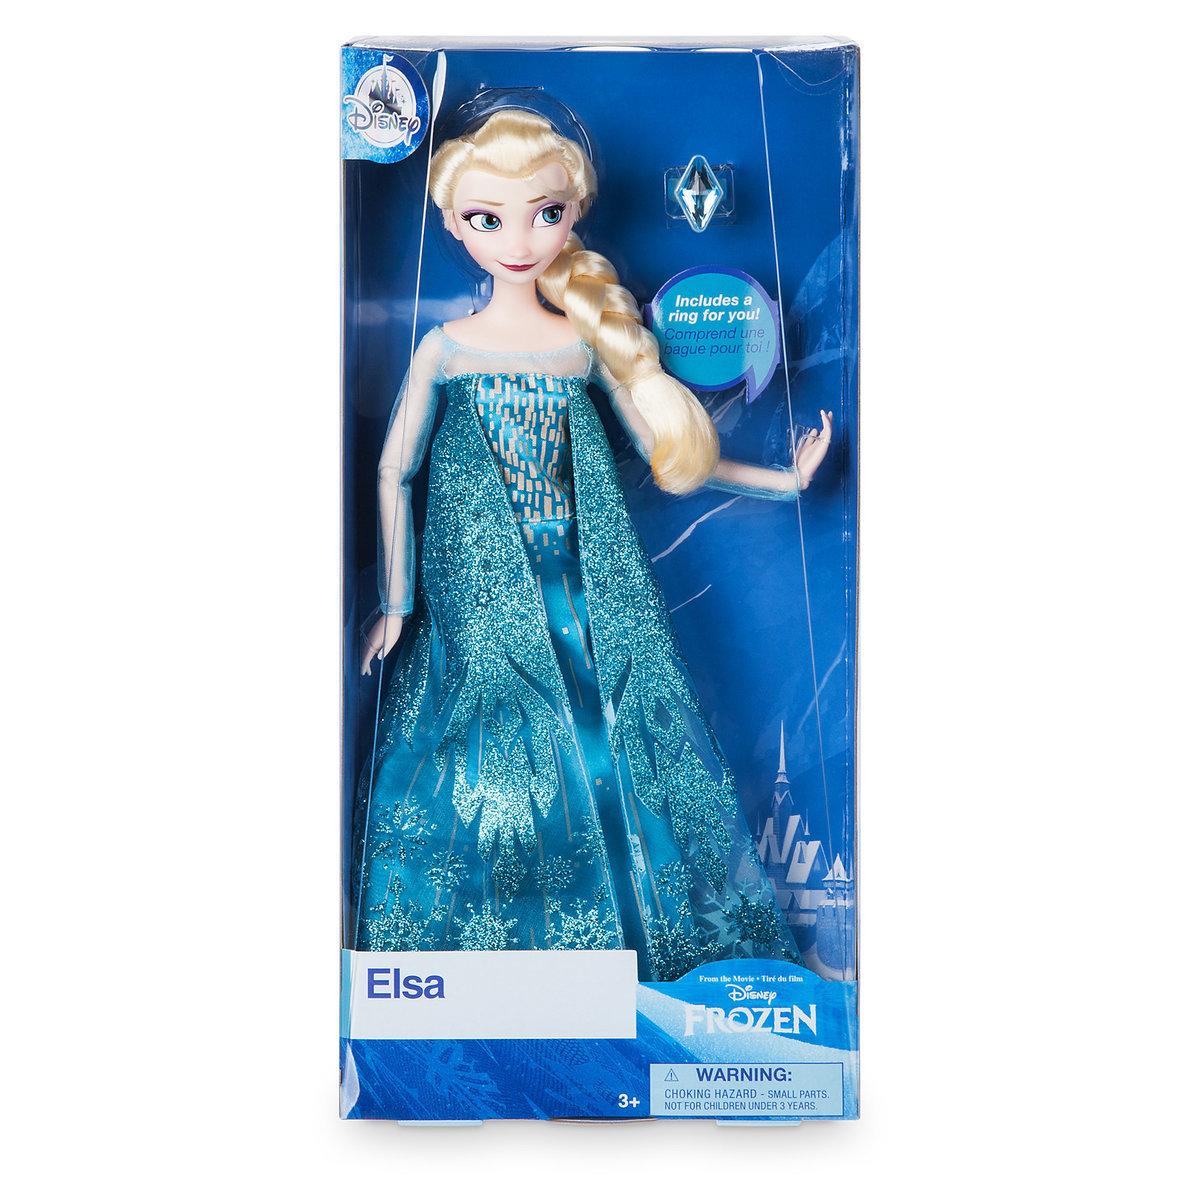 Disney Frozen Elsa of Arendelle Doll With Olaf Genuine Disney